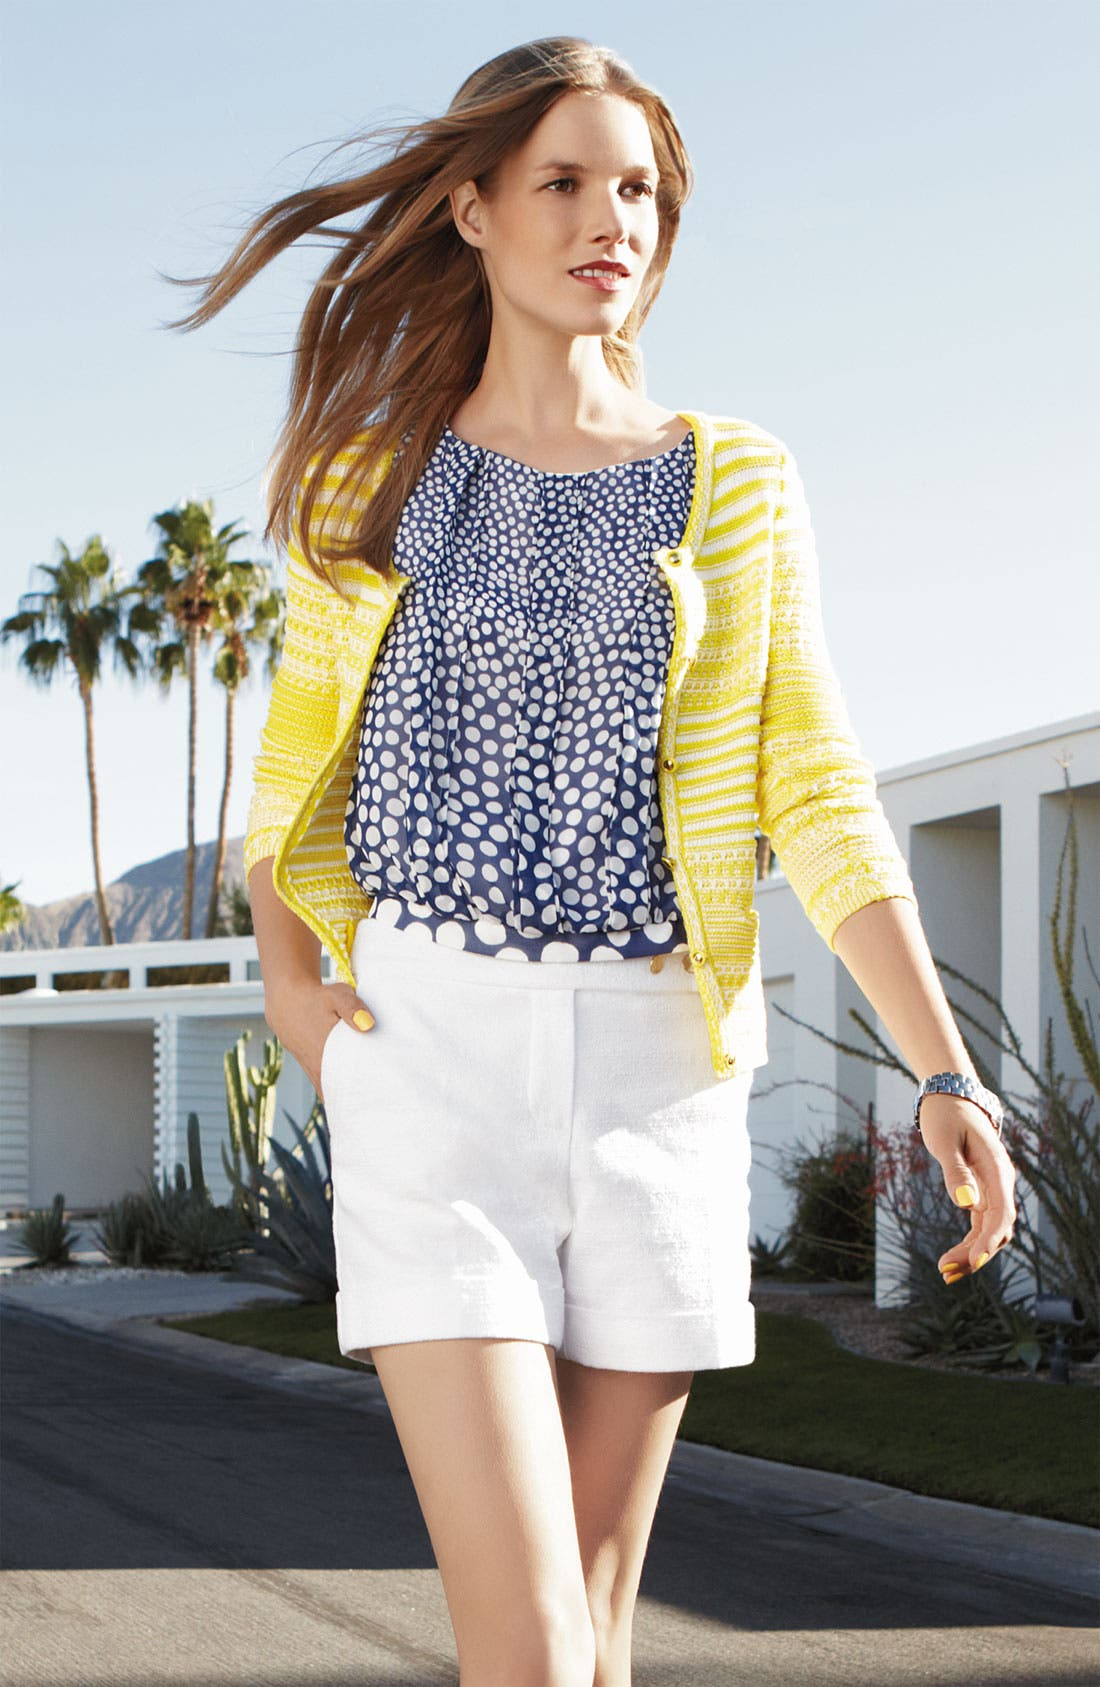 'Kaspie' Pleated Polka Dot Blouson Top,                             Alternate thumbnail 2, color,                             483